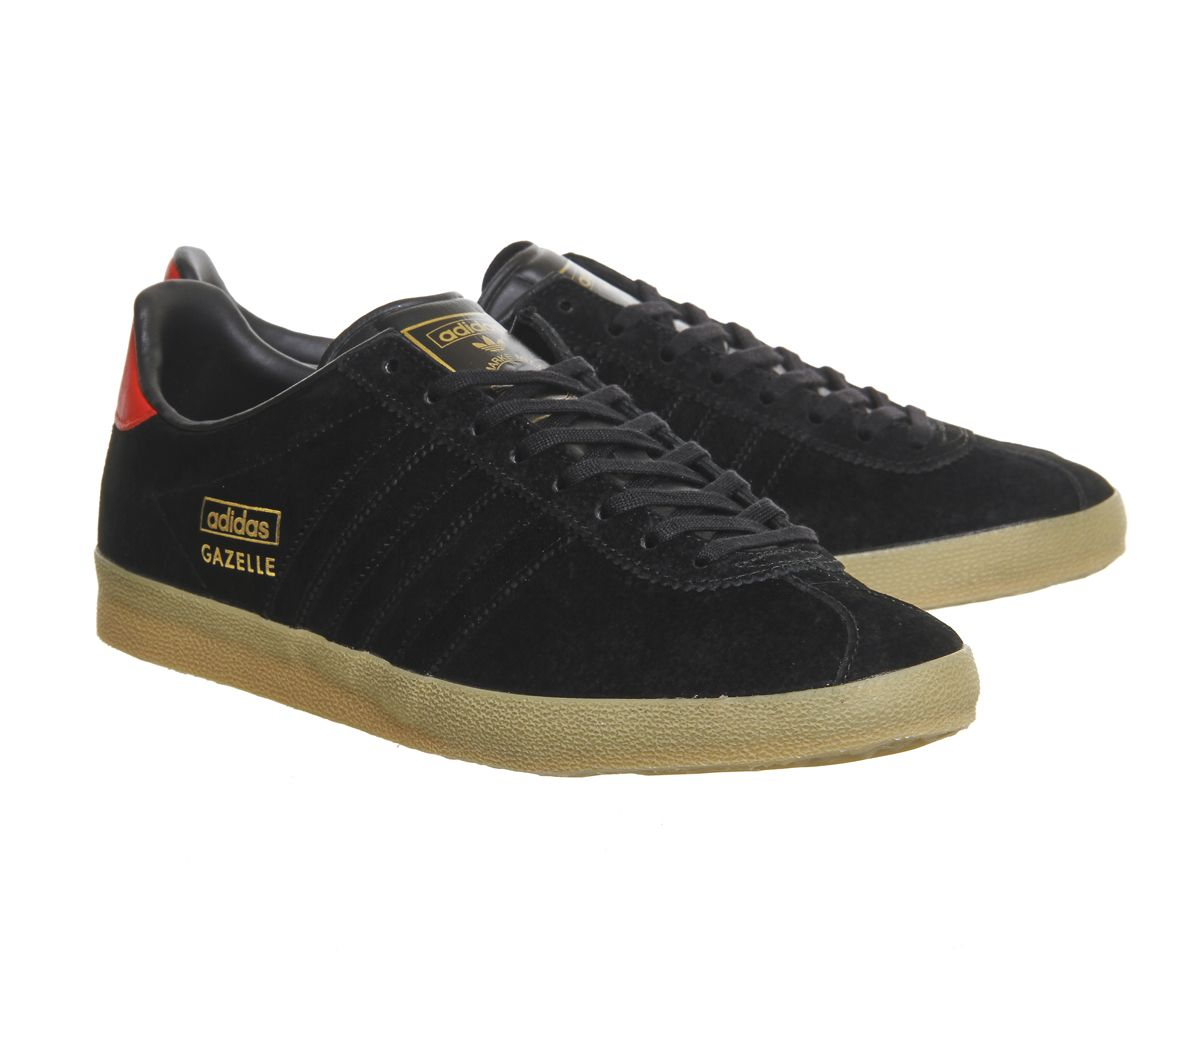 Adidas casual shoes � These understated bad boys were a sound release by  adidas - Gazelle Og finished in Black